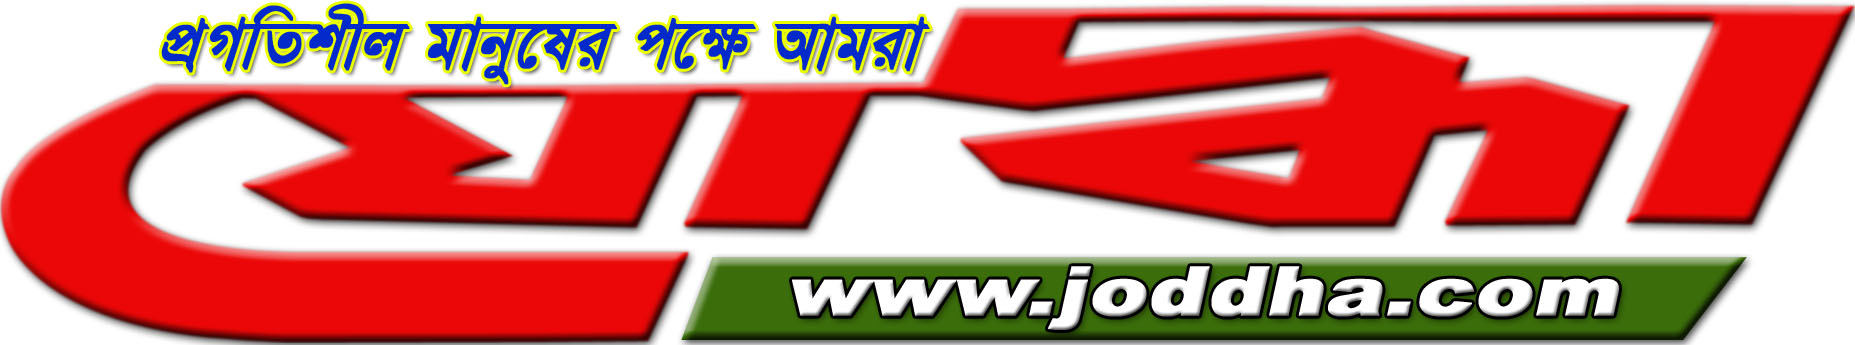 Joddha | Popular Online Bangla Breaking News Portal